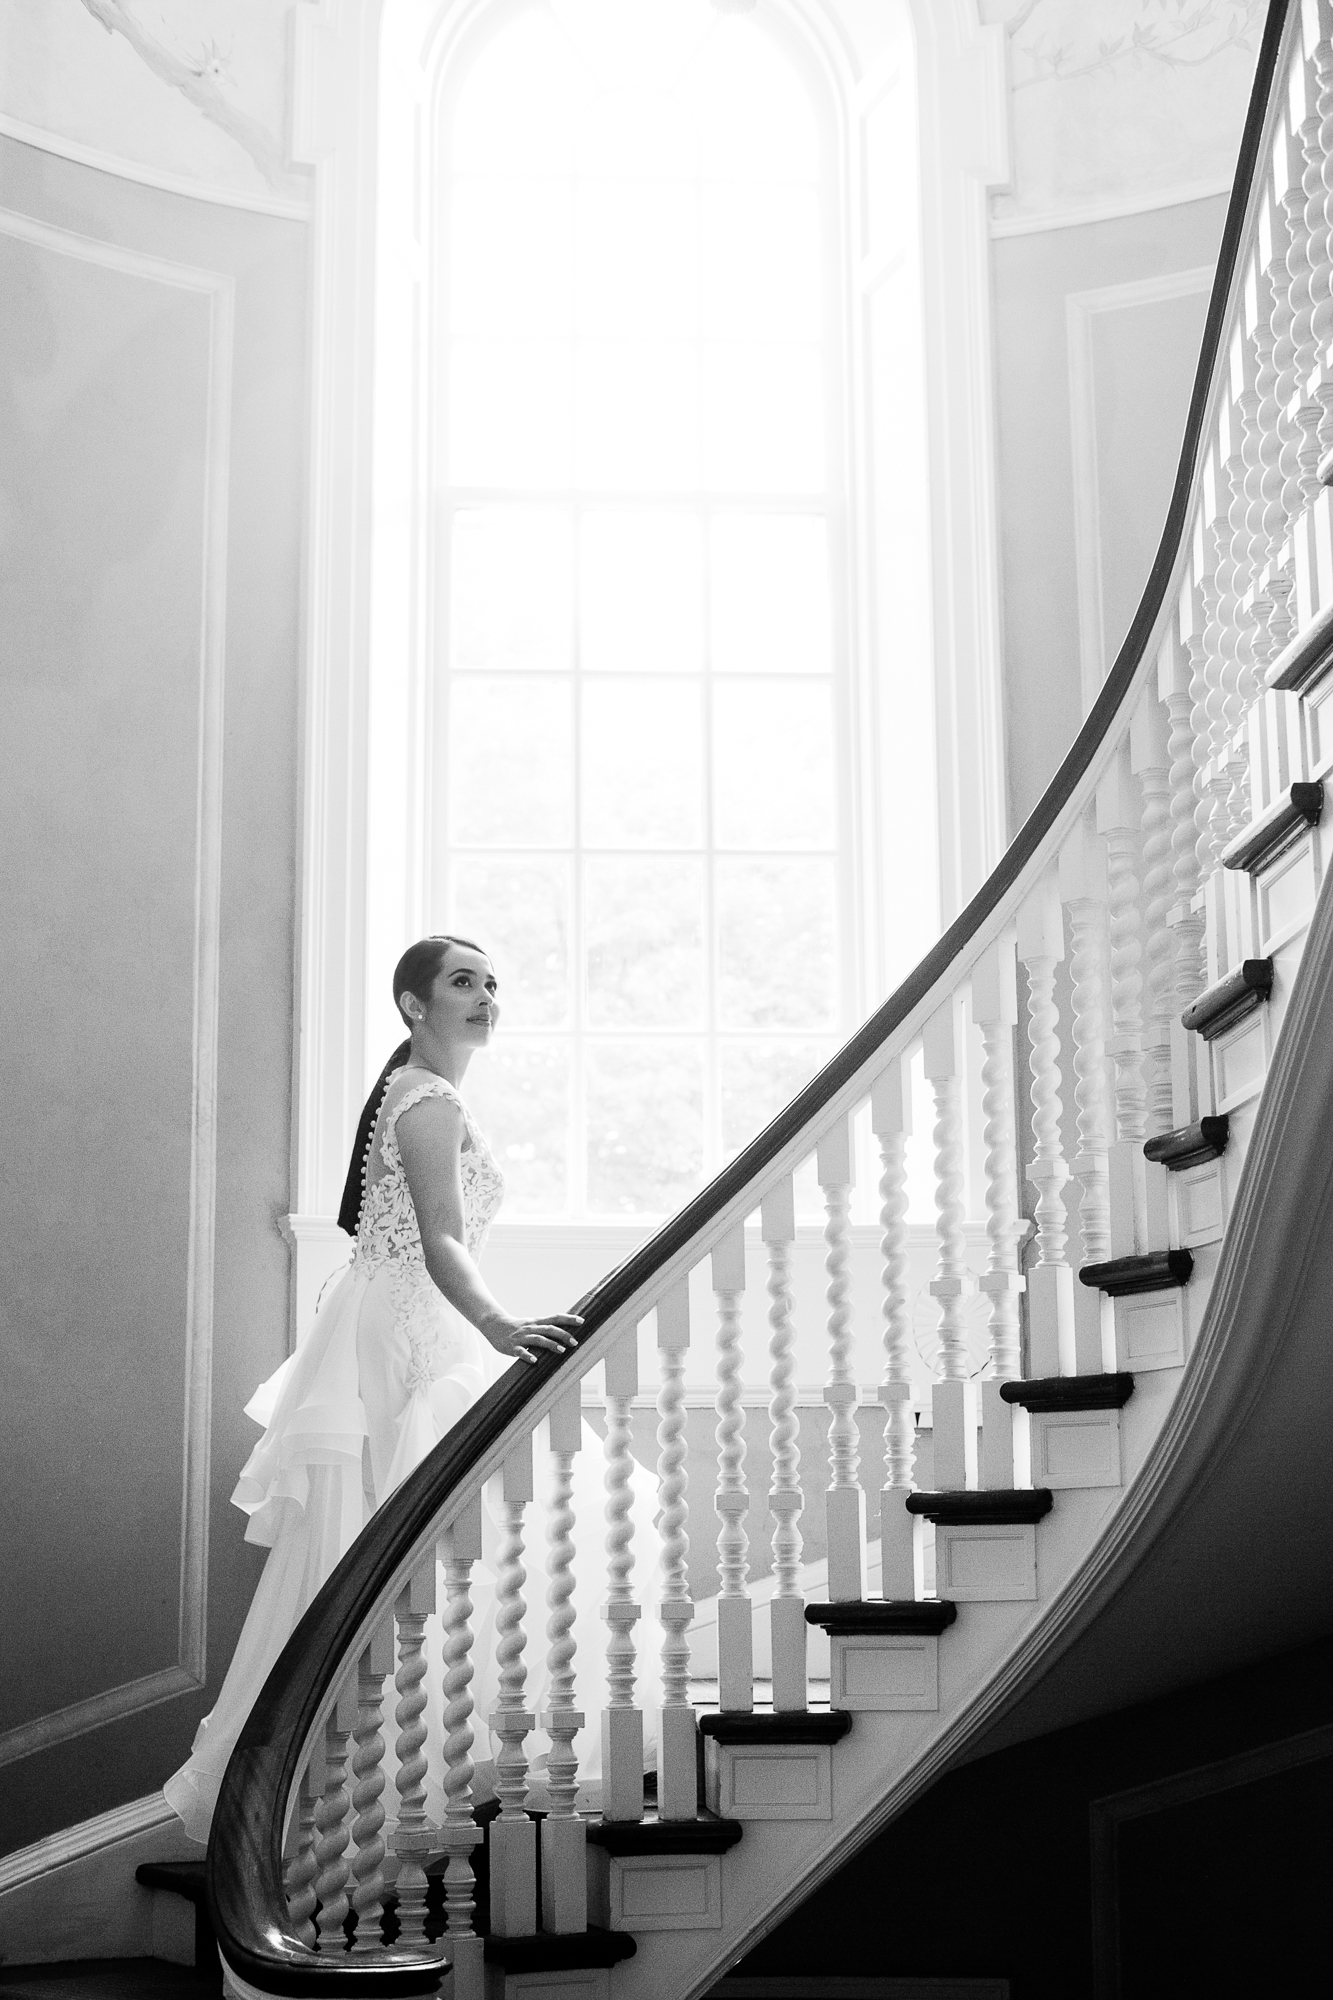 tara-mcmullen-photography-barb-simkova-mclean-house-wedding-estates-of-sunnybrook-wedding-shealyn-angus-wedding-blush-and-bloom-wedding-032